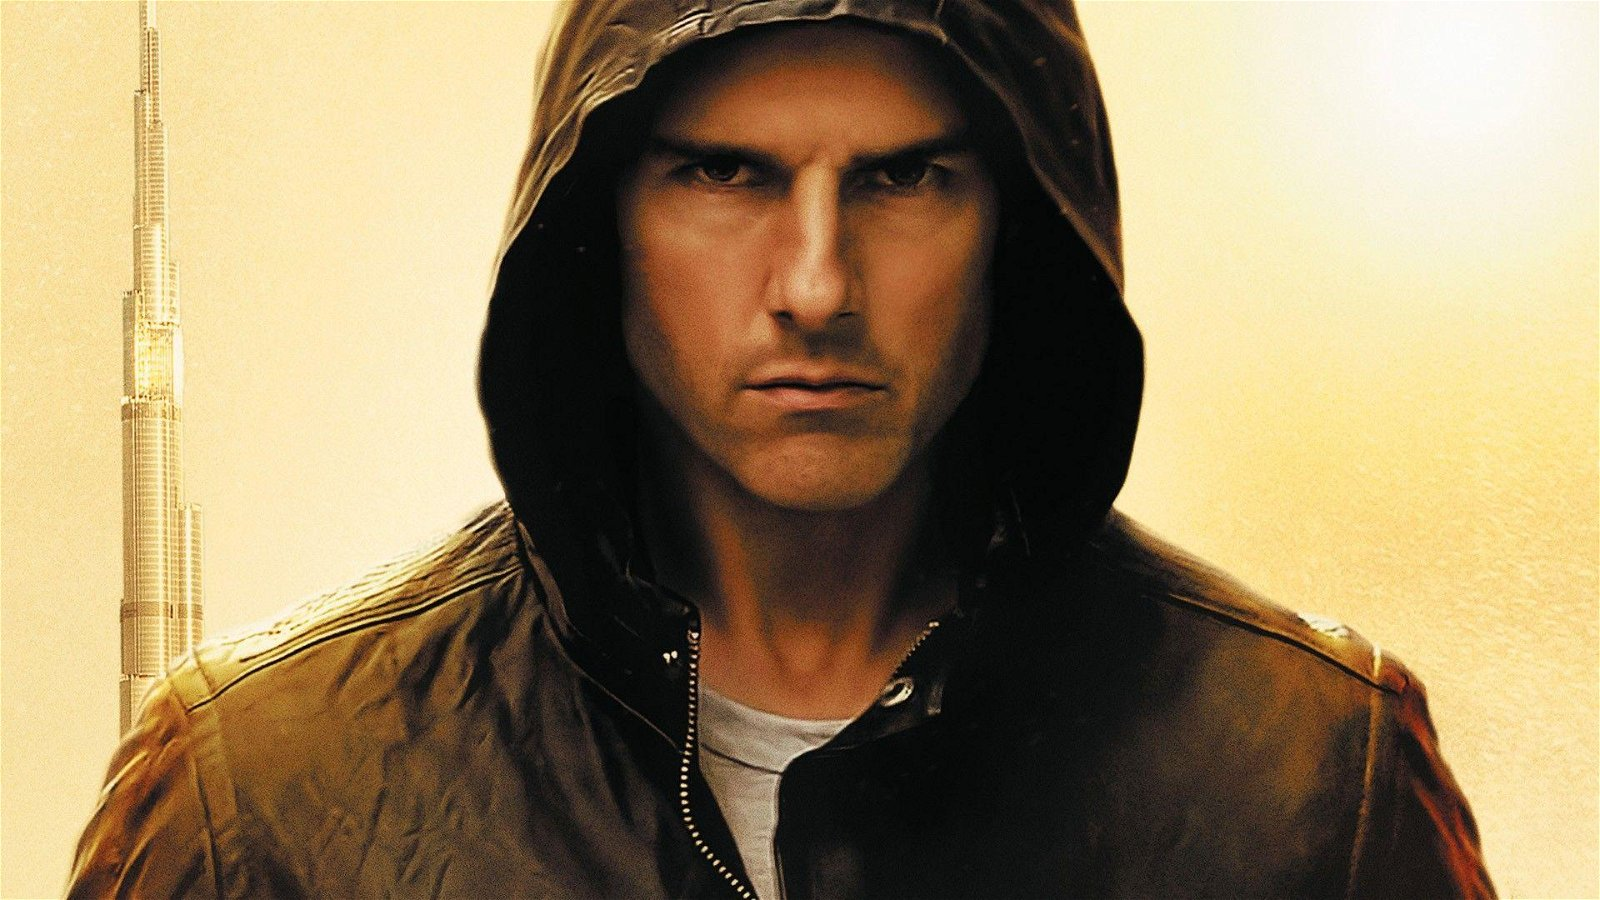 Tom Cruise Threatens to Fire Crew for Not Following Covid-19 Protocols on Set of Mission Impossible 7